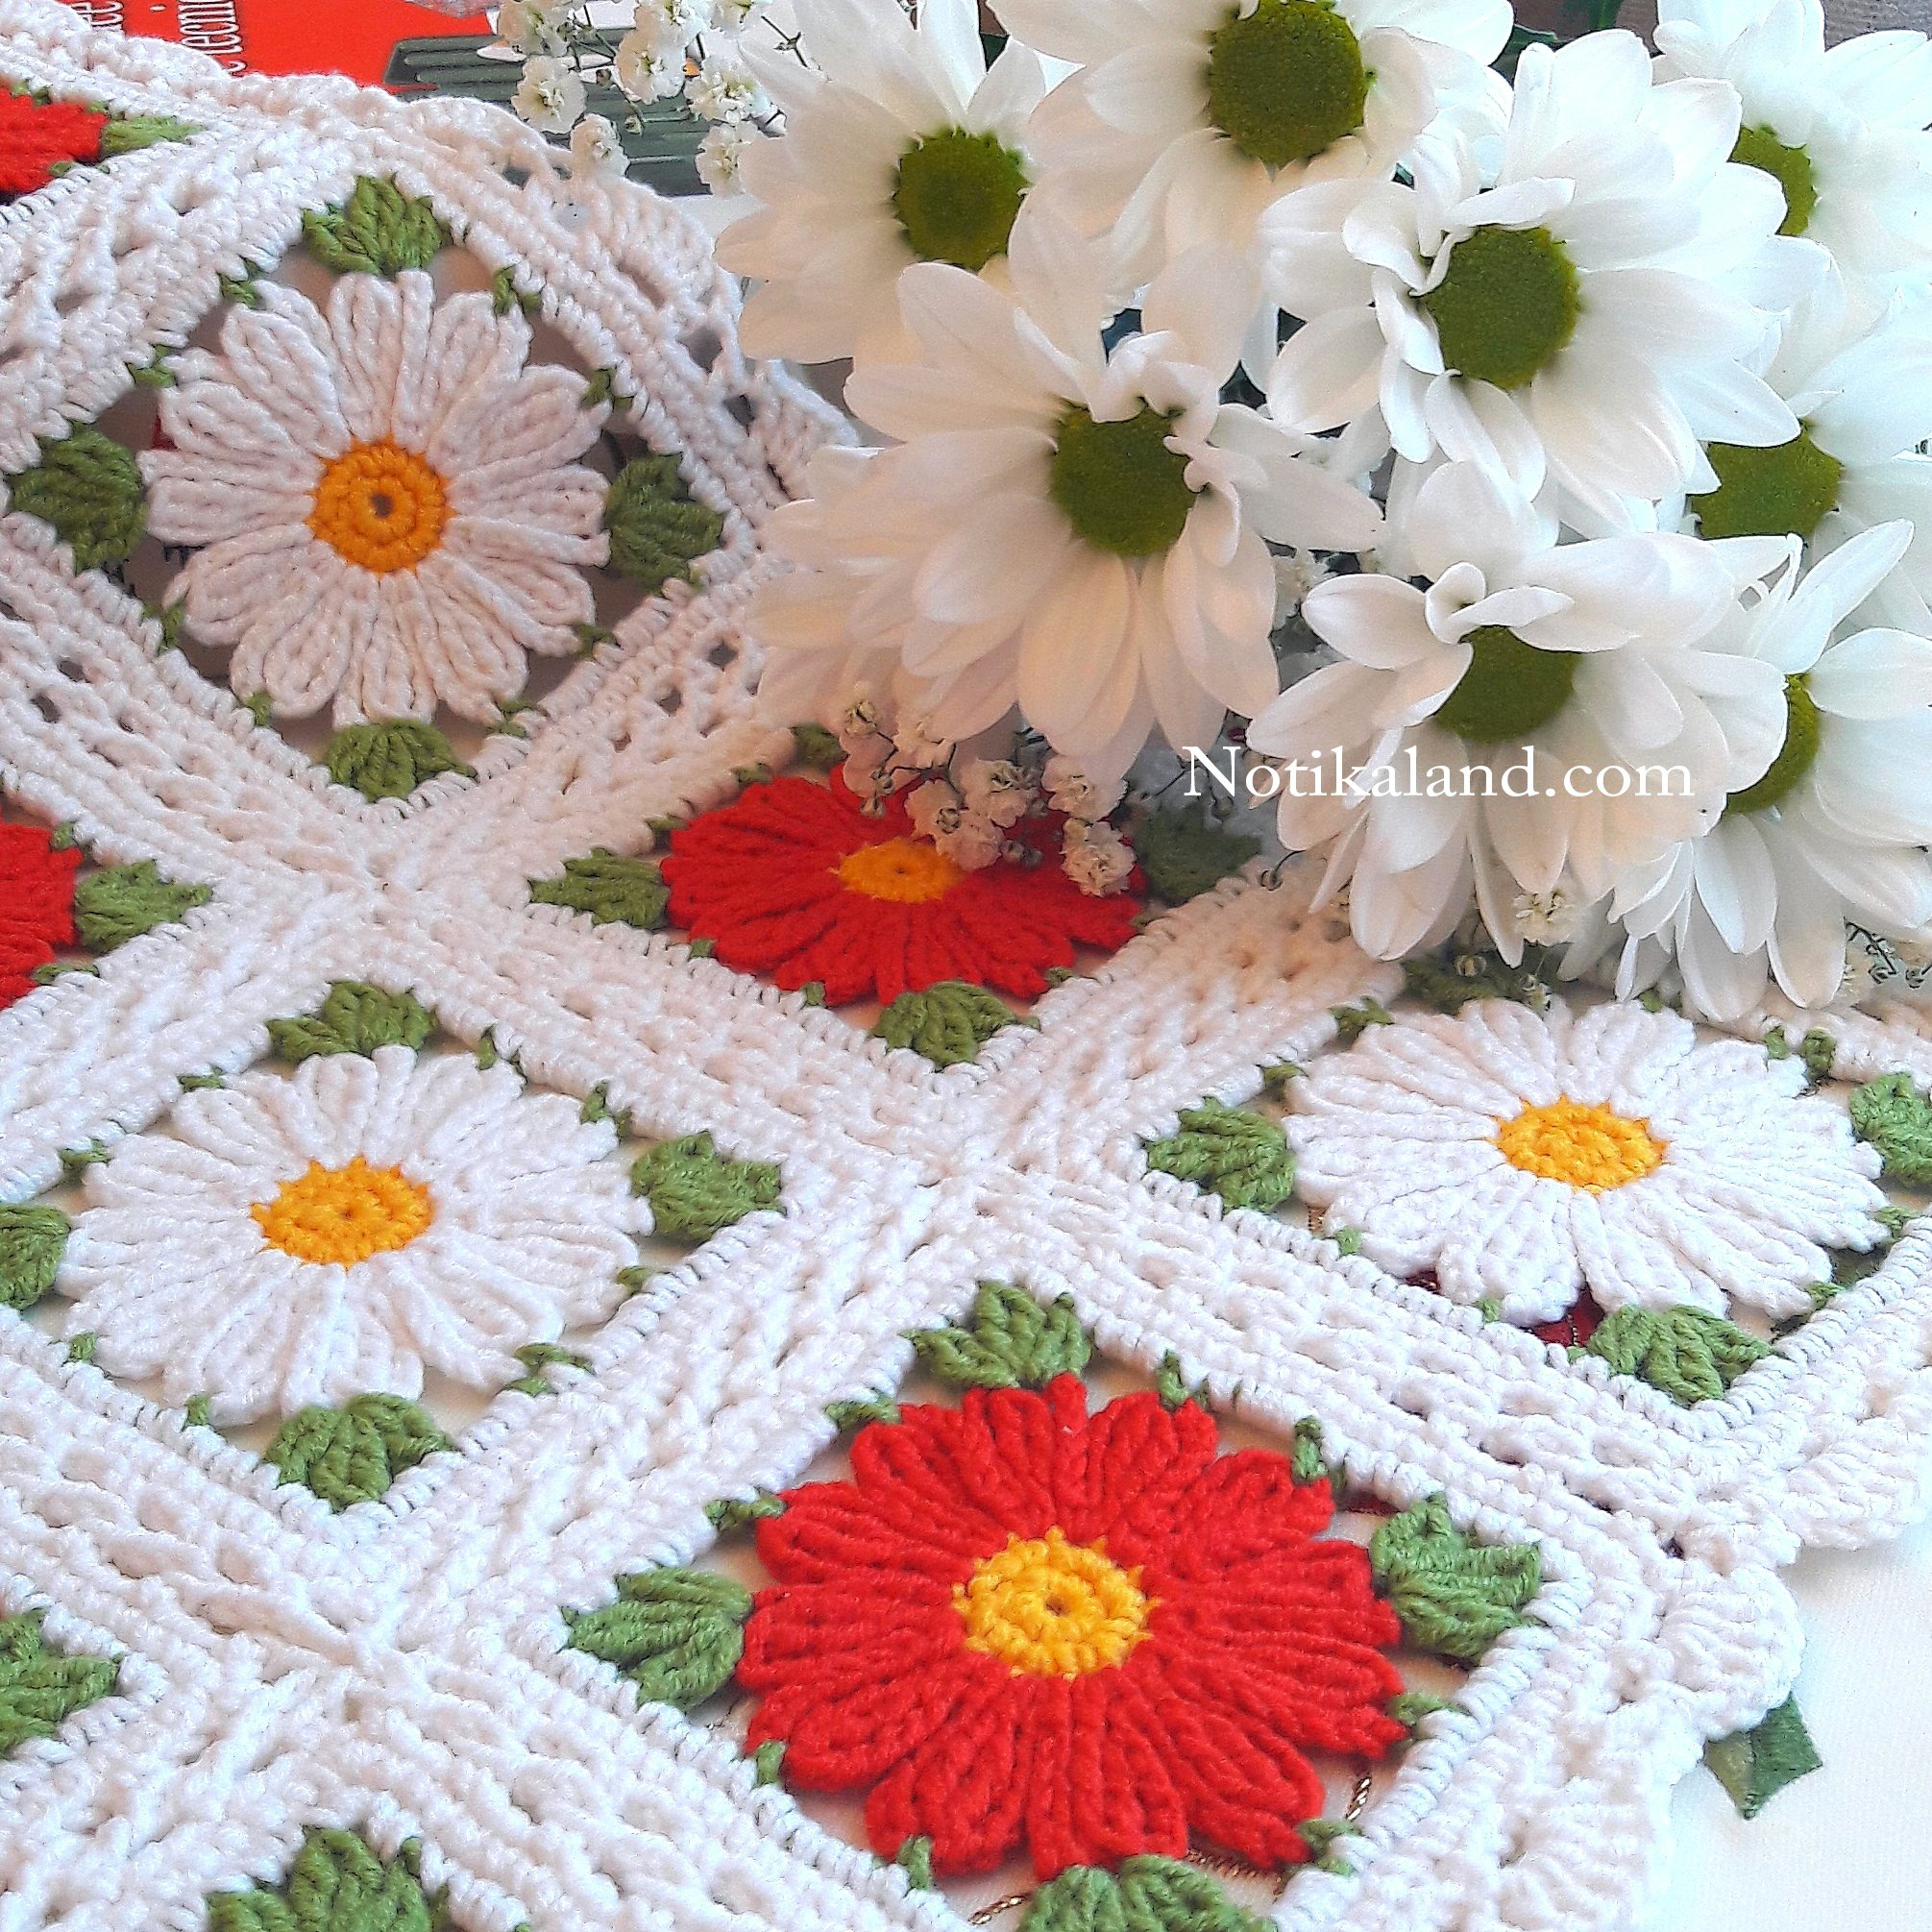 Granny square Motif, Pattern for doily, tablecloth, blanket.